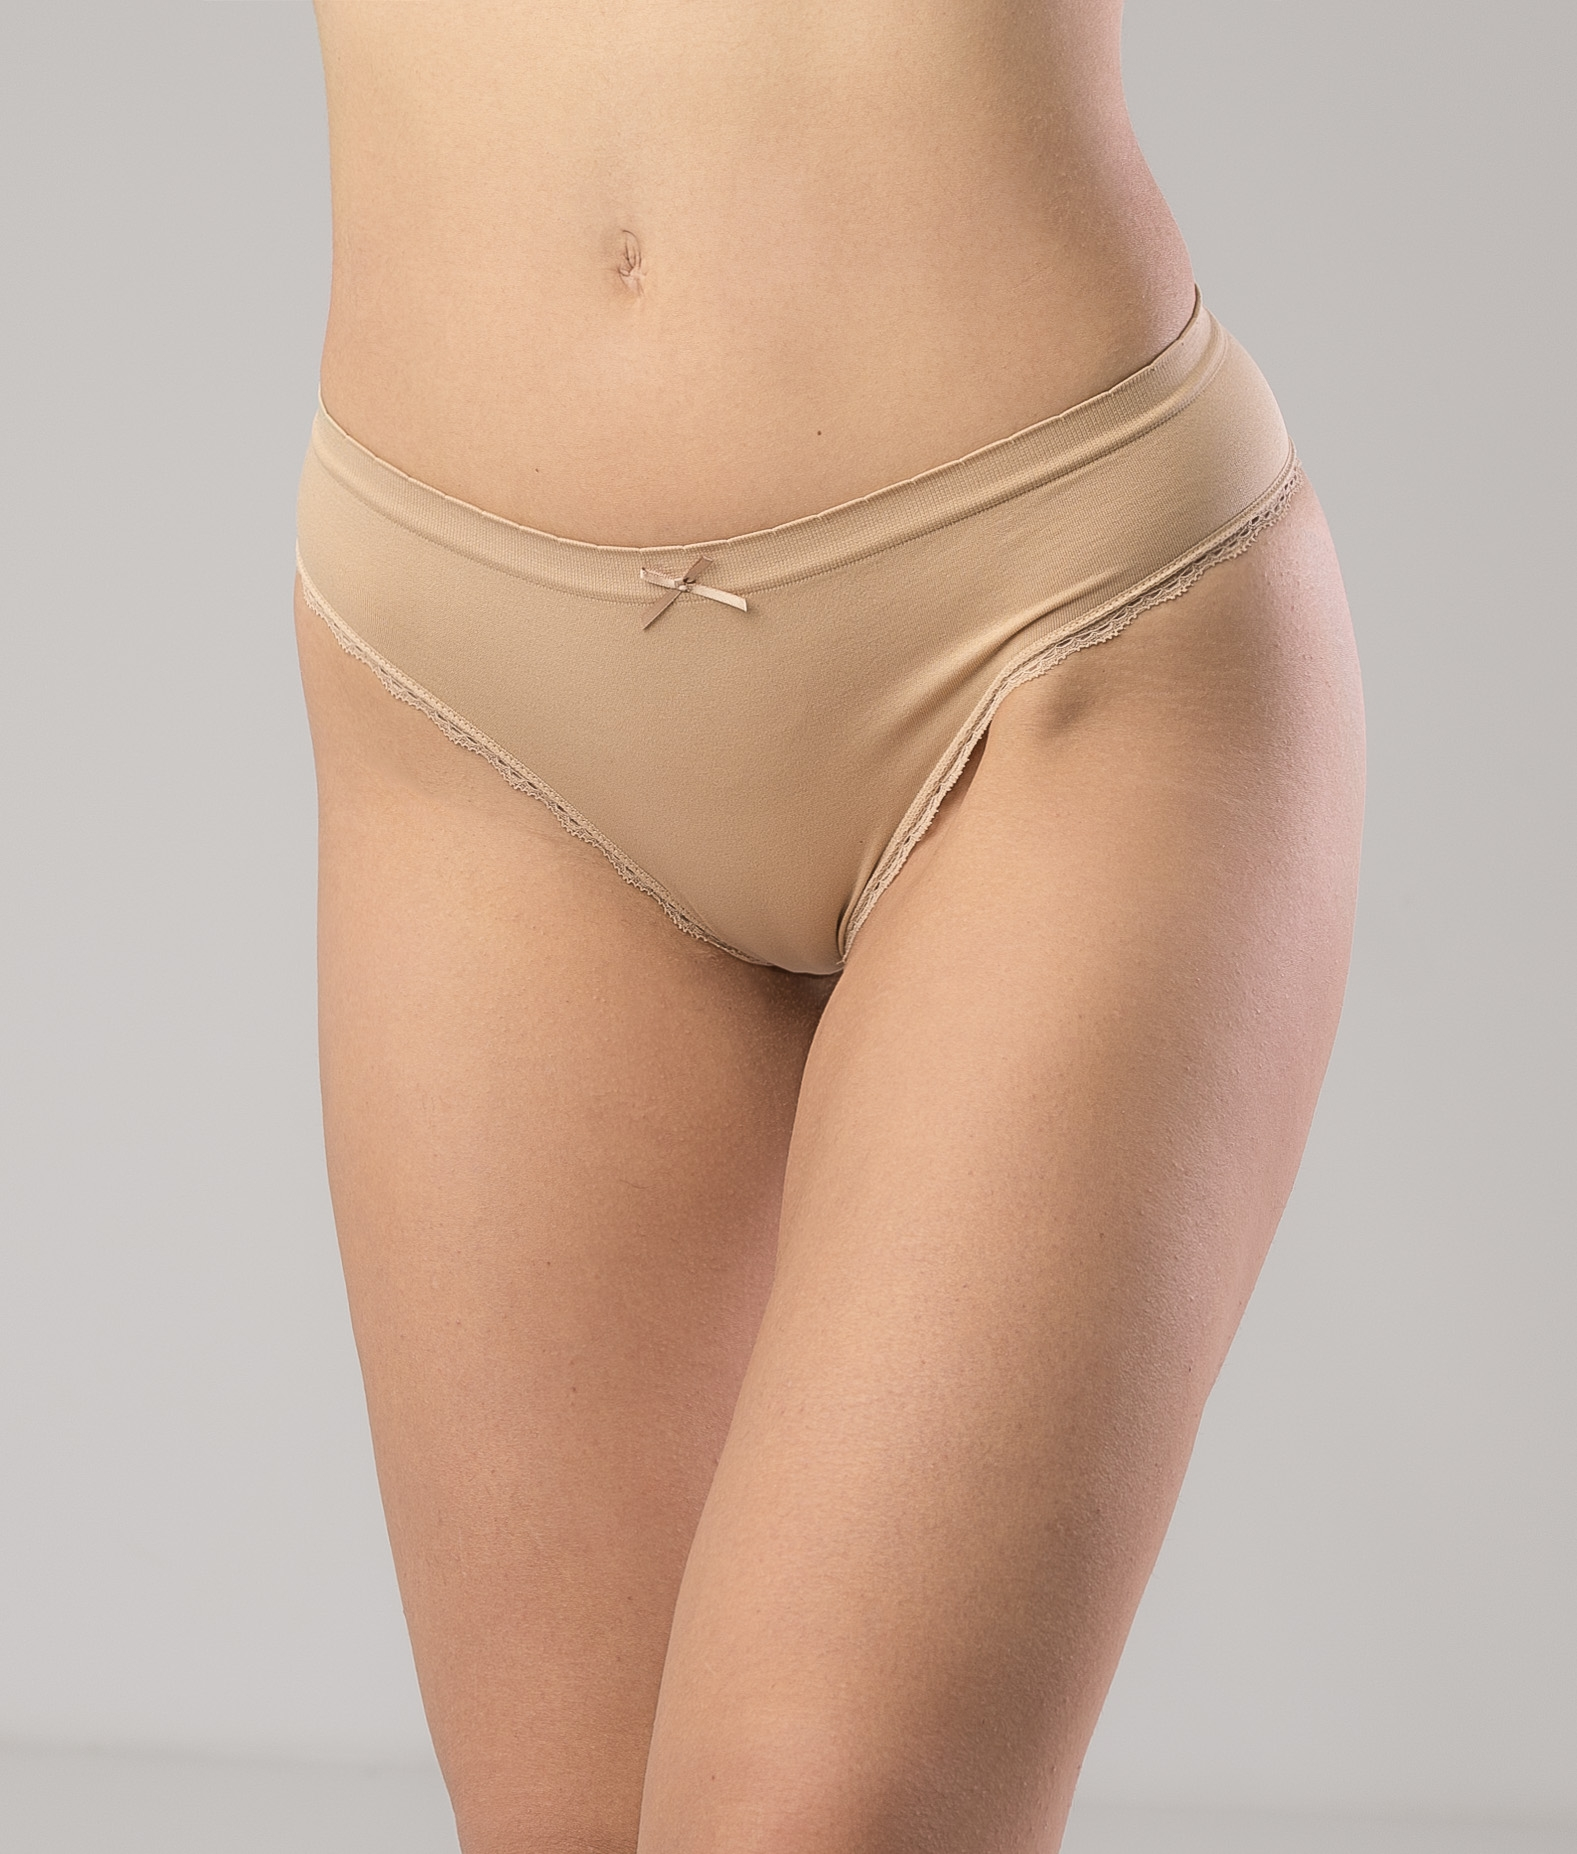 KNICKERS FRINCE - NUDE